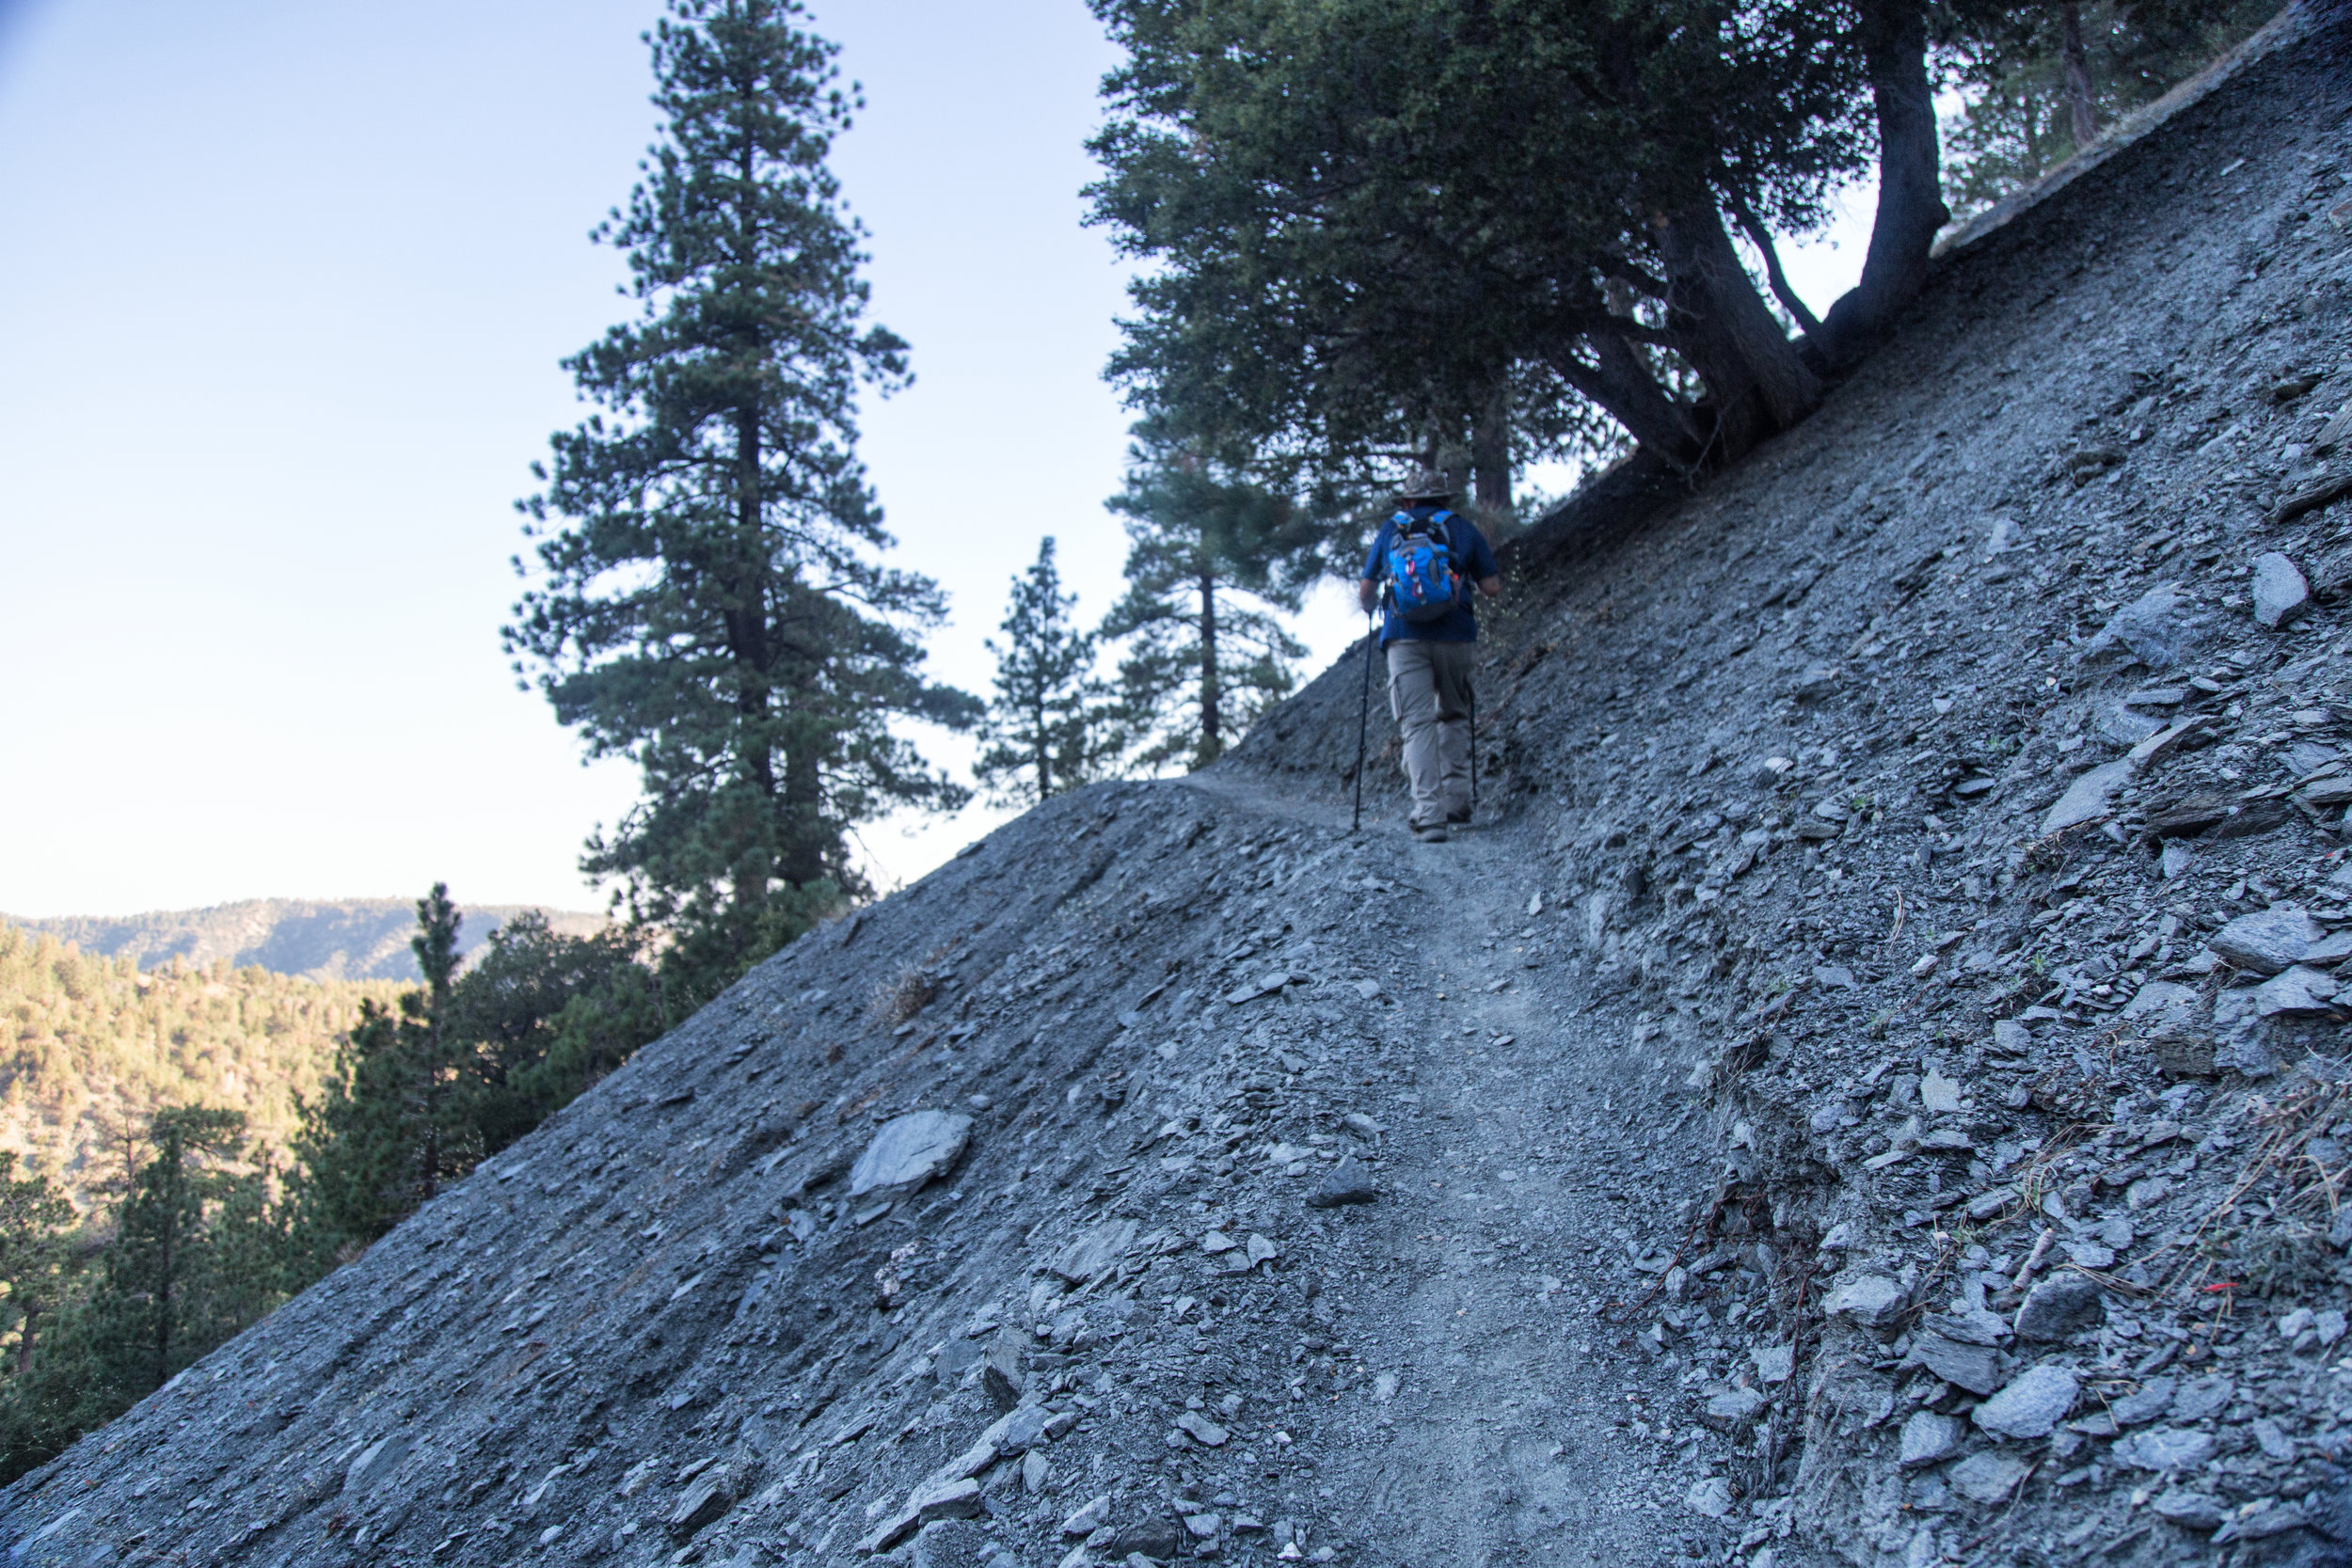 Some of the trail gets pretty steep with precipitous drop offs.